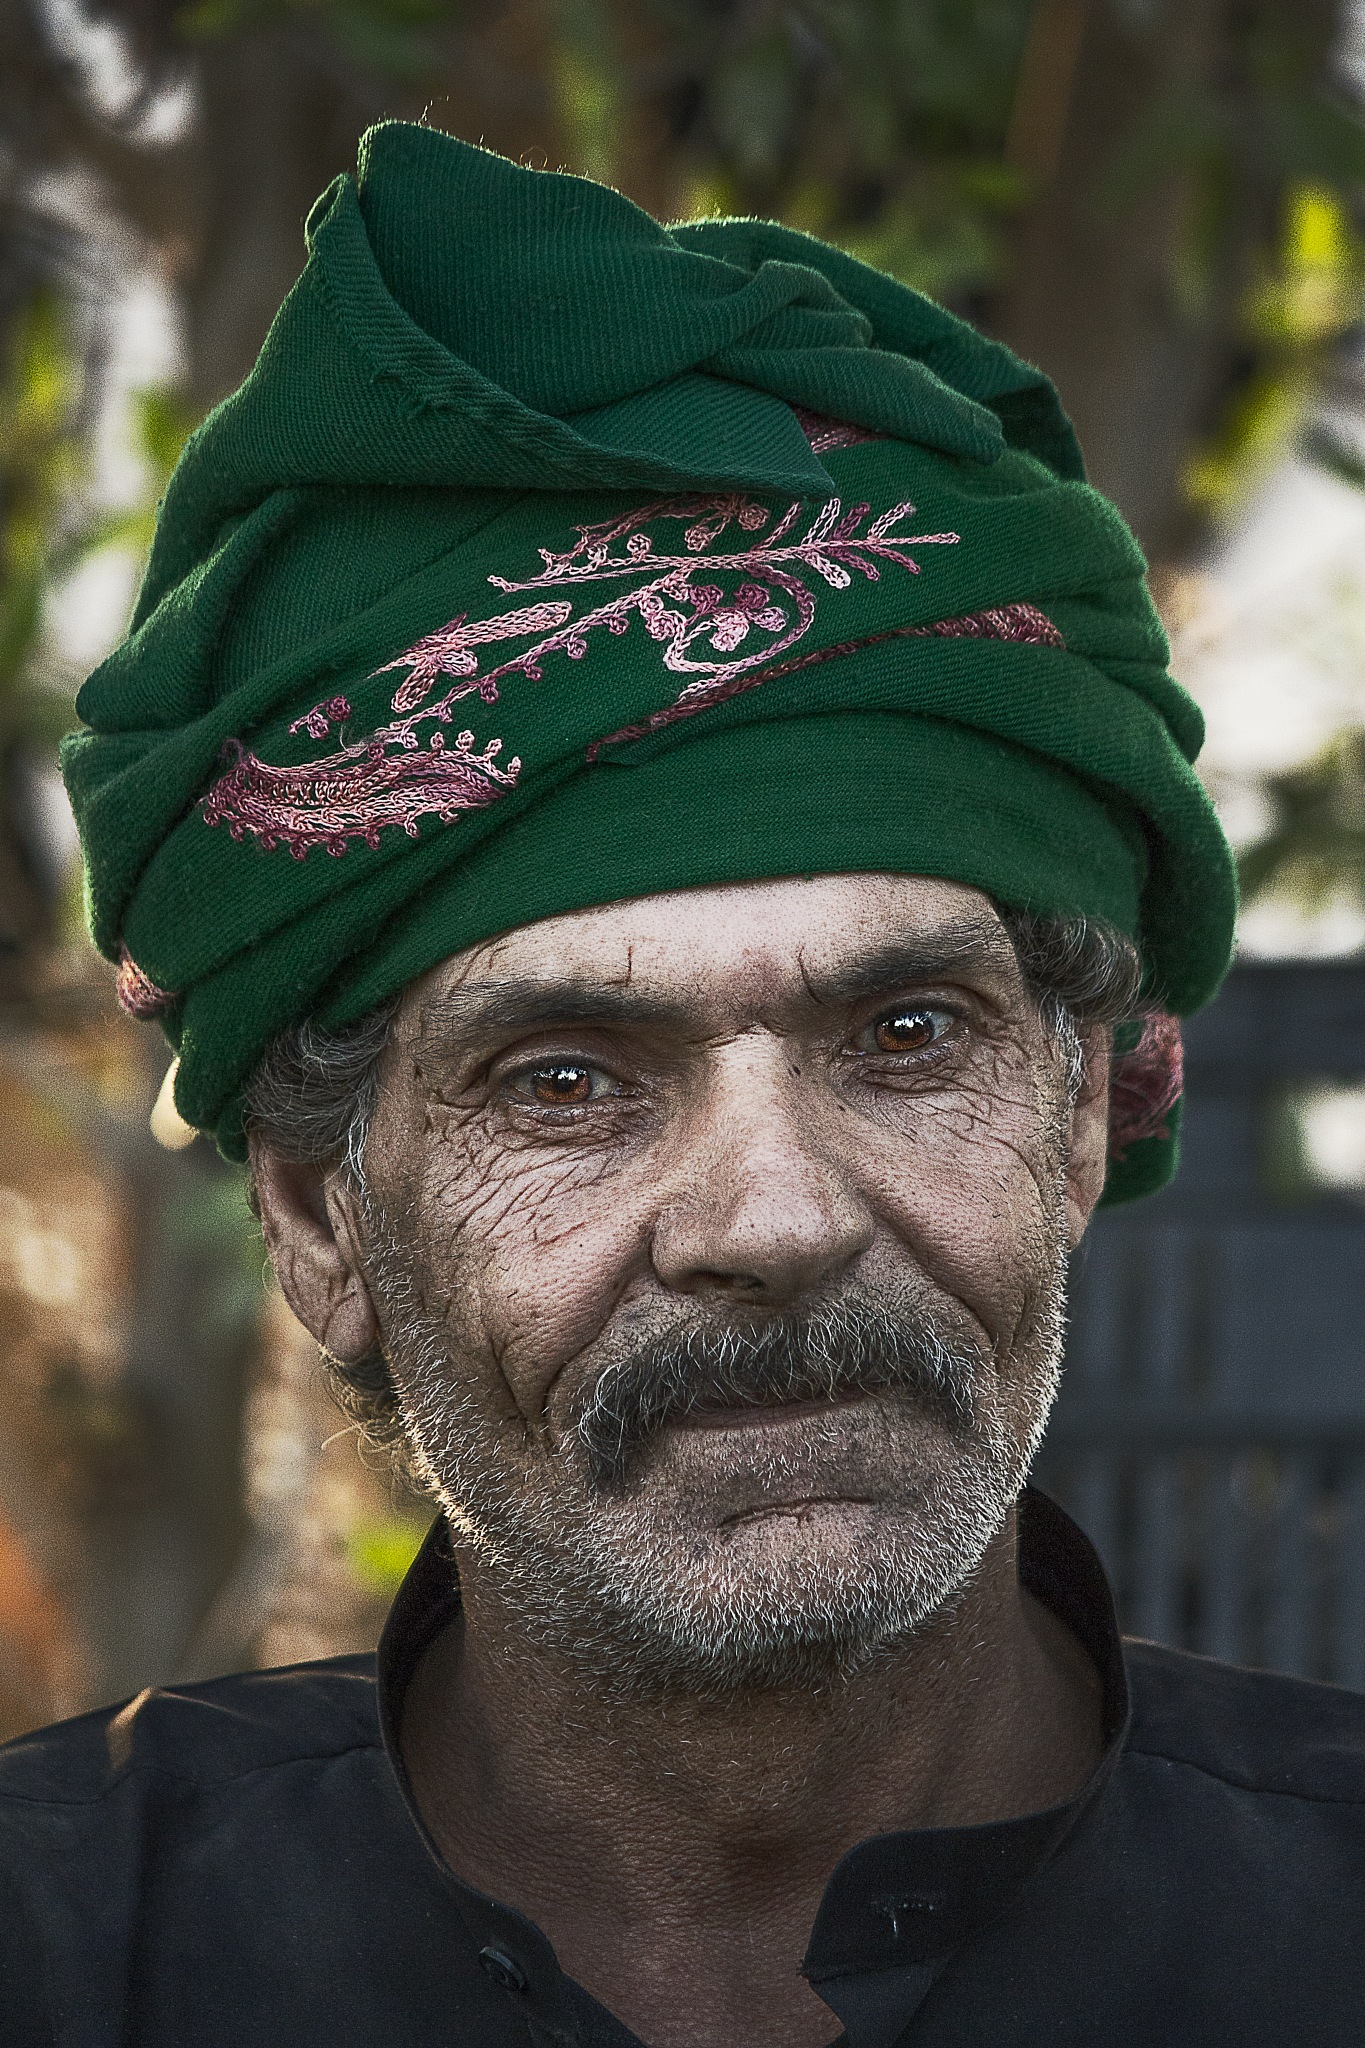 Old Man with Great Eye by Mujtaba Ziyad